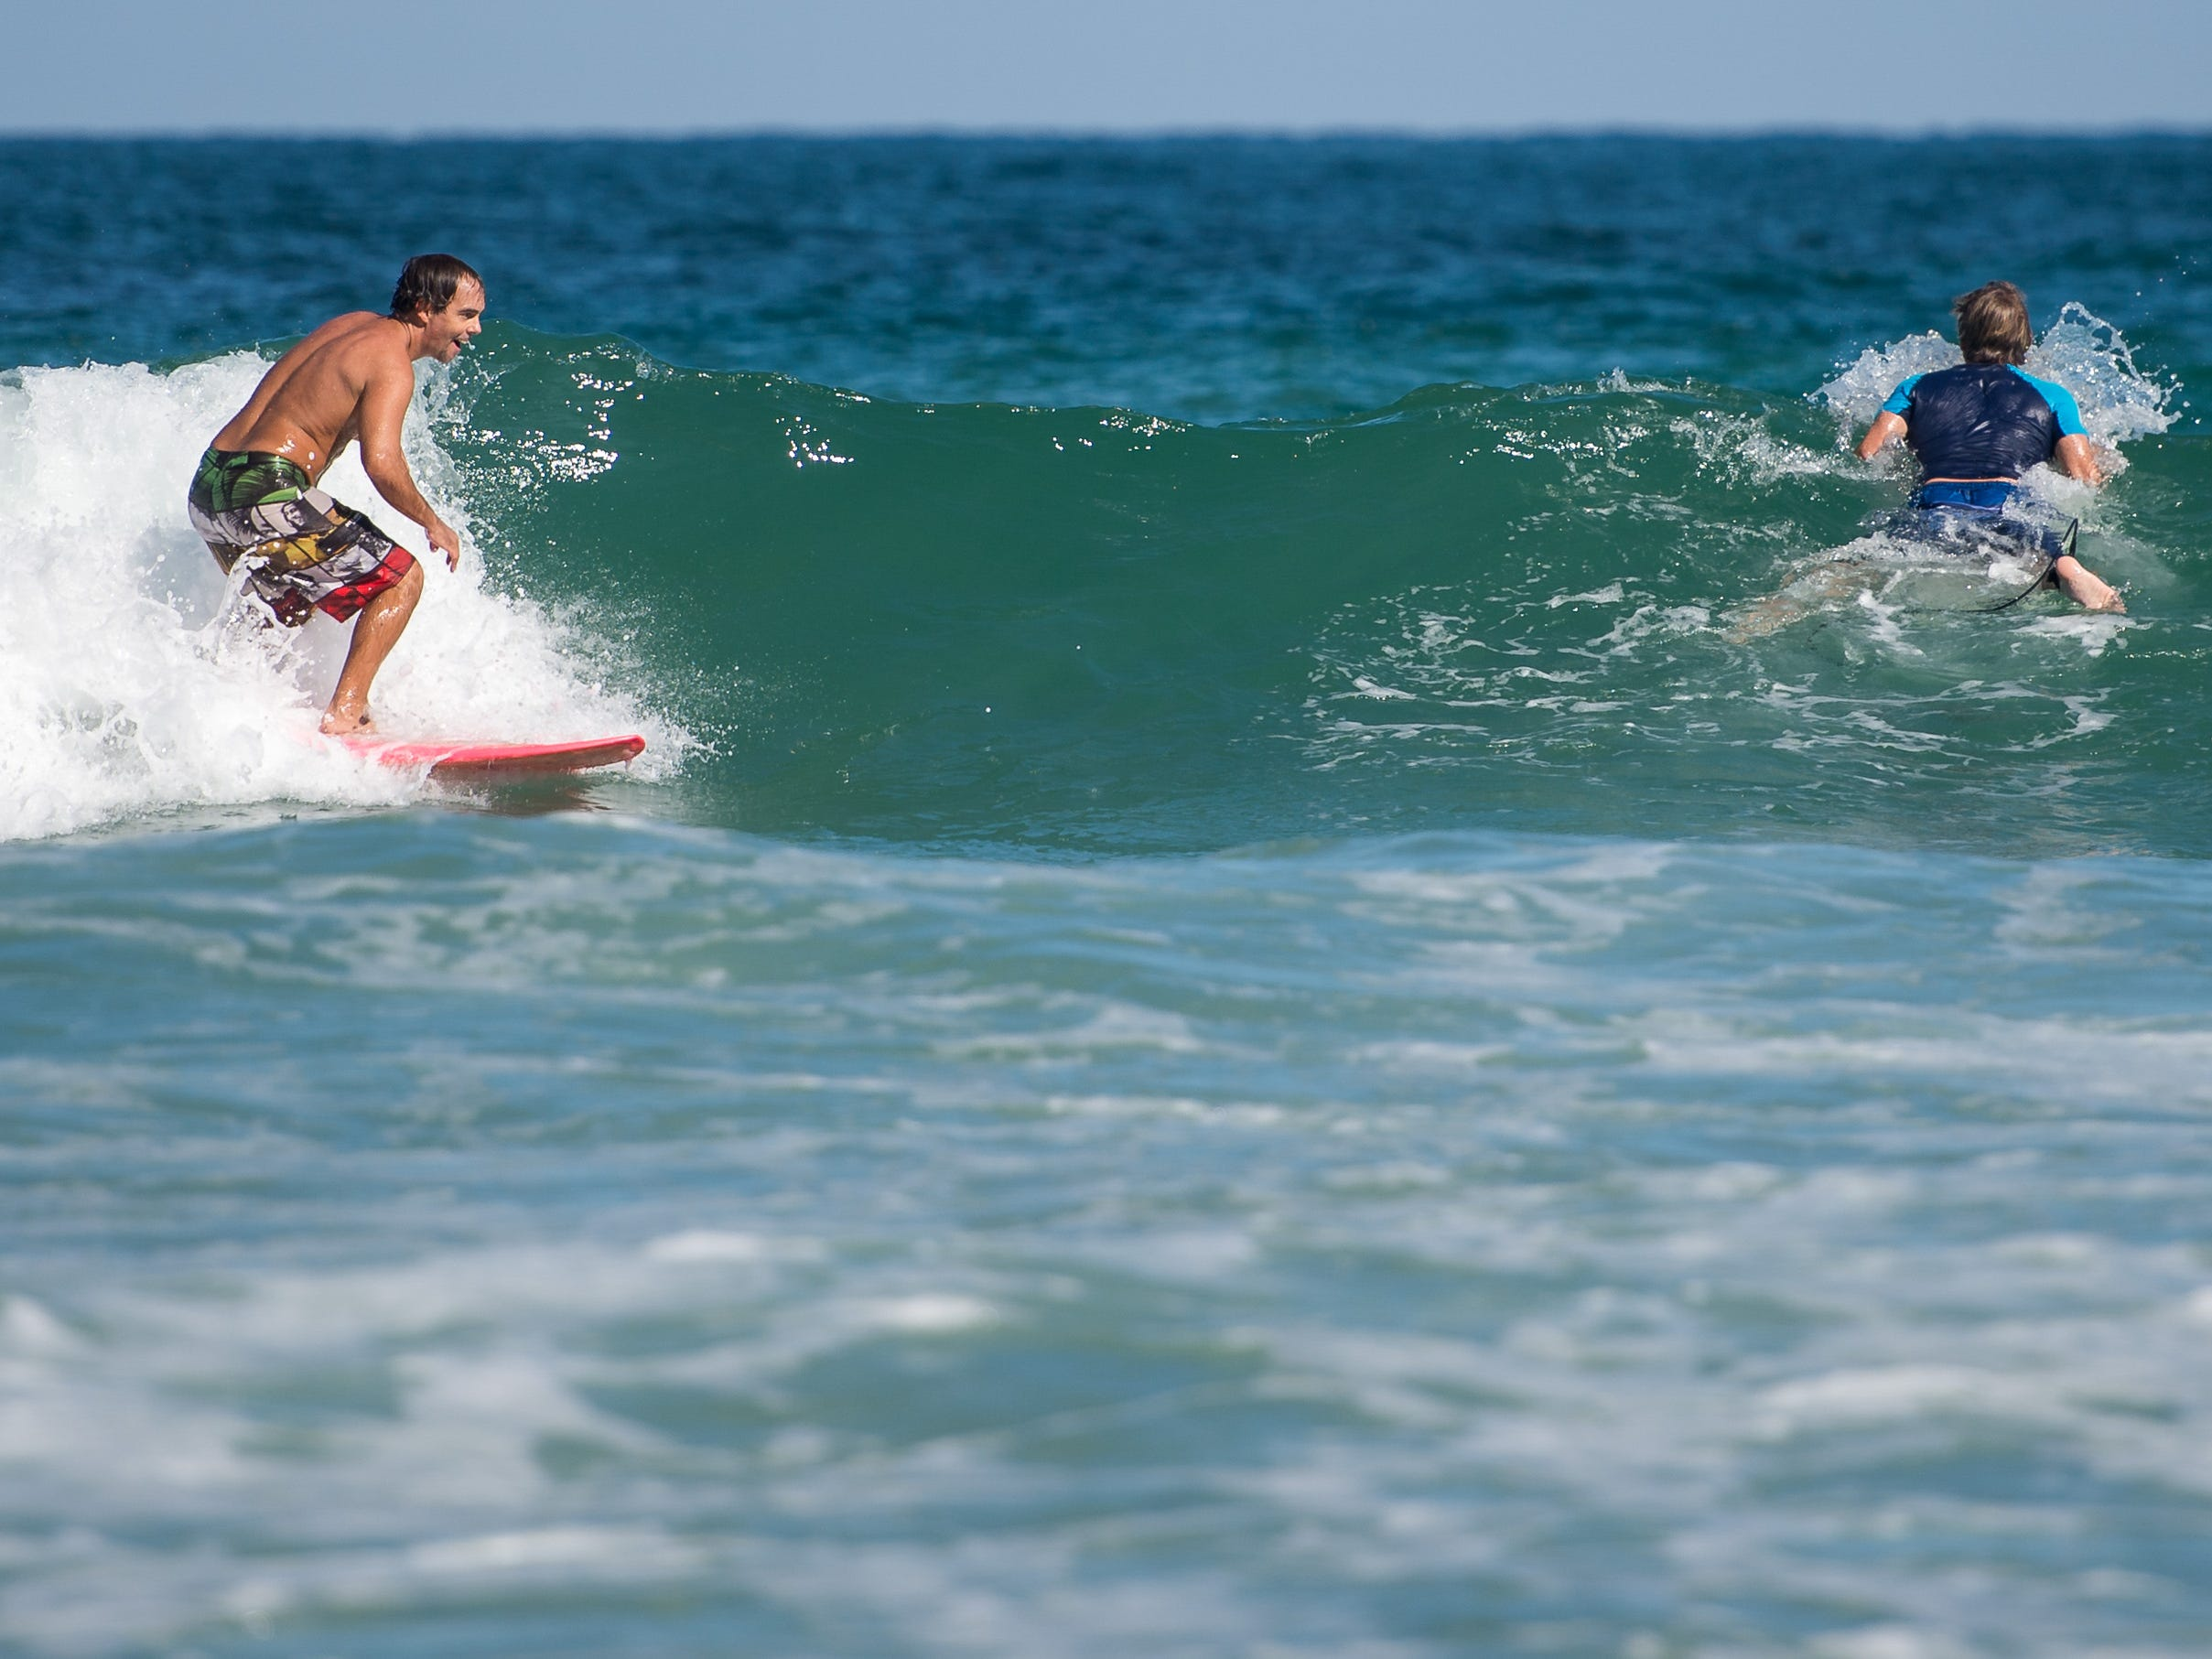 """Shane Hammond (left), of Fort Pierce, catches a wave and passes by fellow surfer Jim Spencer, of Port St. Lucie, on Monday, Oct. 29, 2018, at Fort Pierce Inlet State Park in St. Lucie County. Hammond said he came out to surf at the same spot last weekend for about an hour, and felt the effects from red tide almost immediately. """"I was actually down for the count all weekend, that was rough,"""" he said. Hammond, who usually appreciates the ocean for its restorative properties, added """"I've never seen, or felt or experienced anything like this…I hope we can fix this."""" Spencer, who Hammond called a """"die-hard surfer,"""" said he came out to surf a couple of days ago and couldn't even get in the water."""